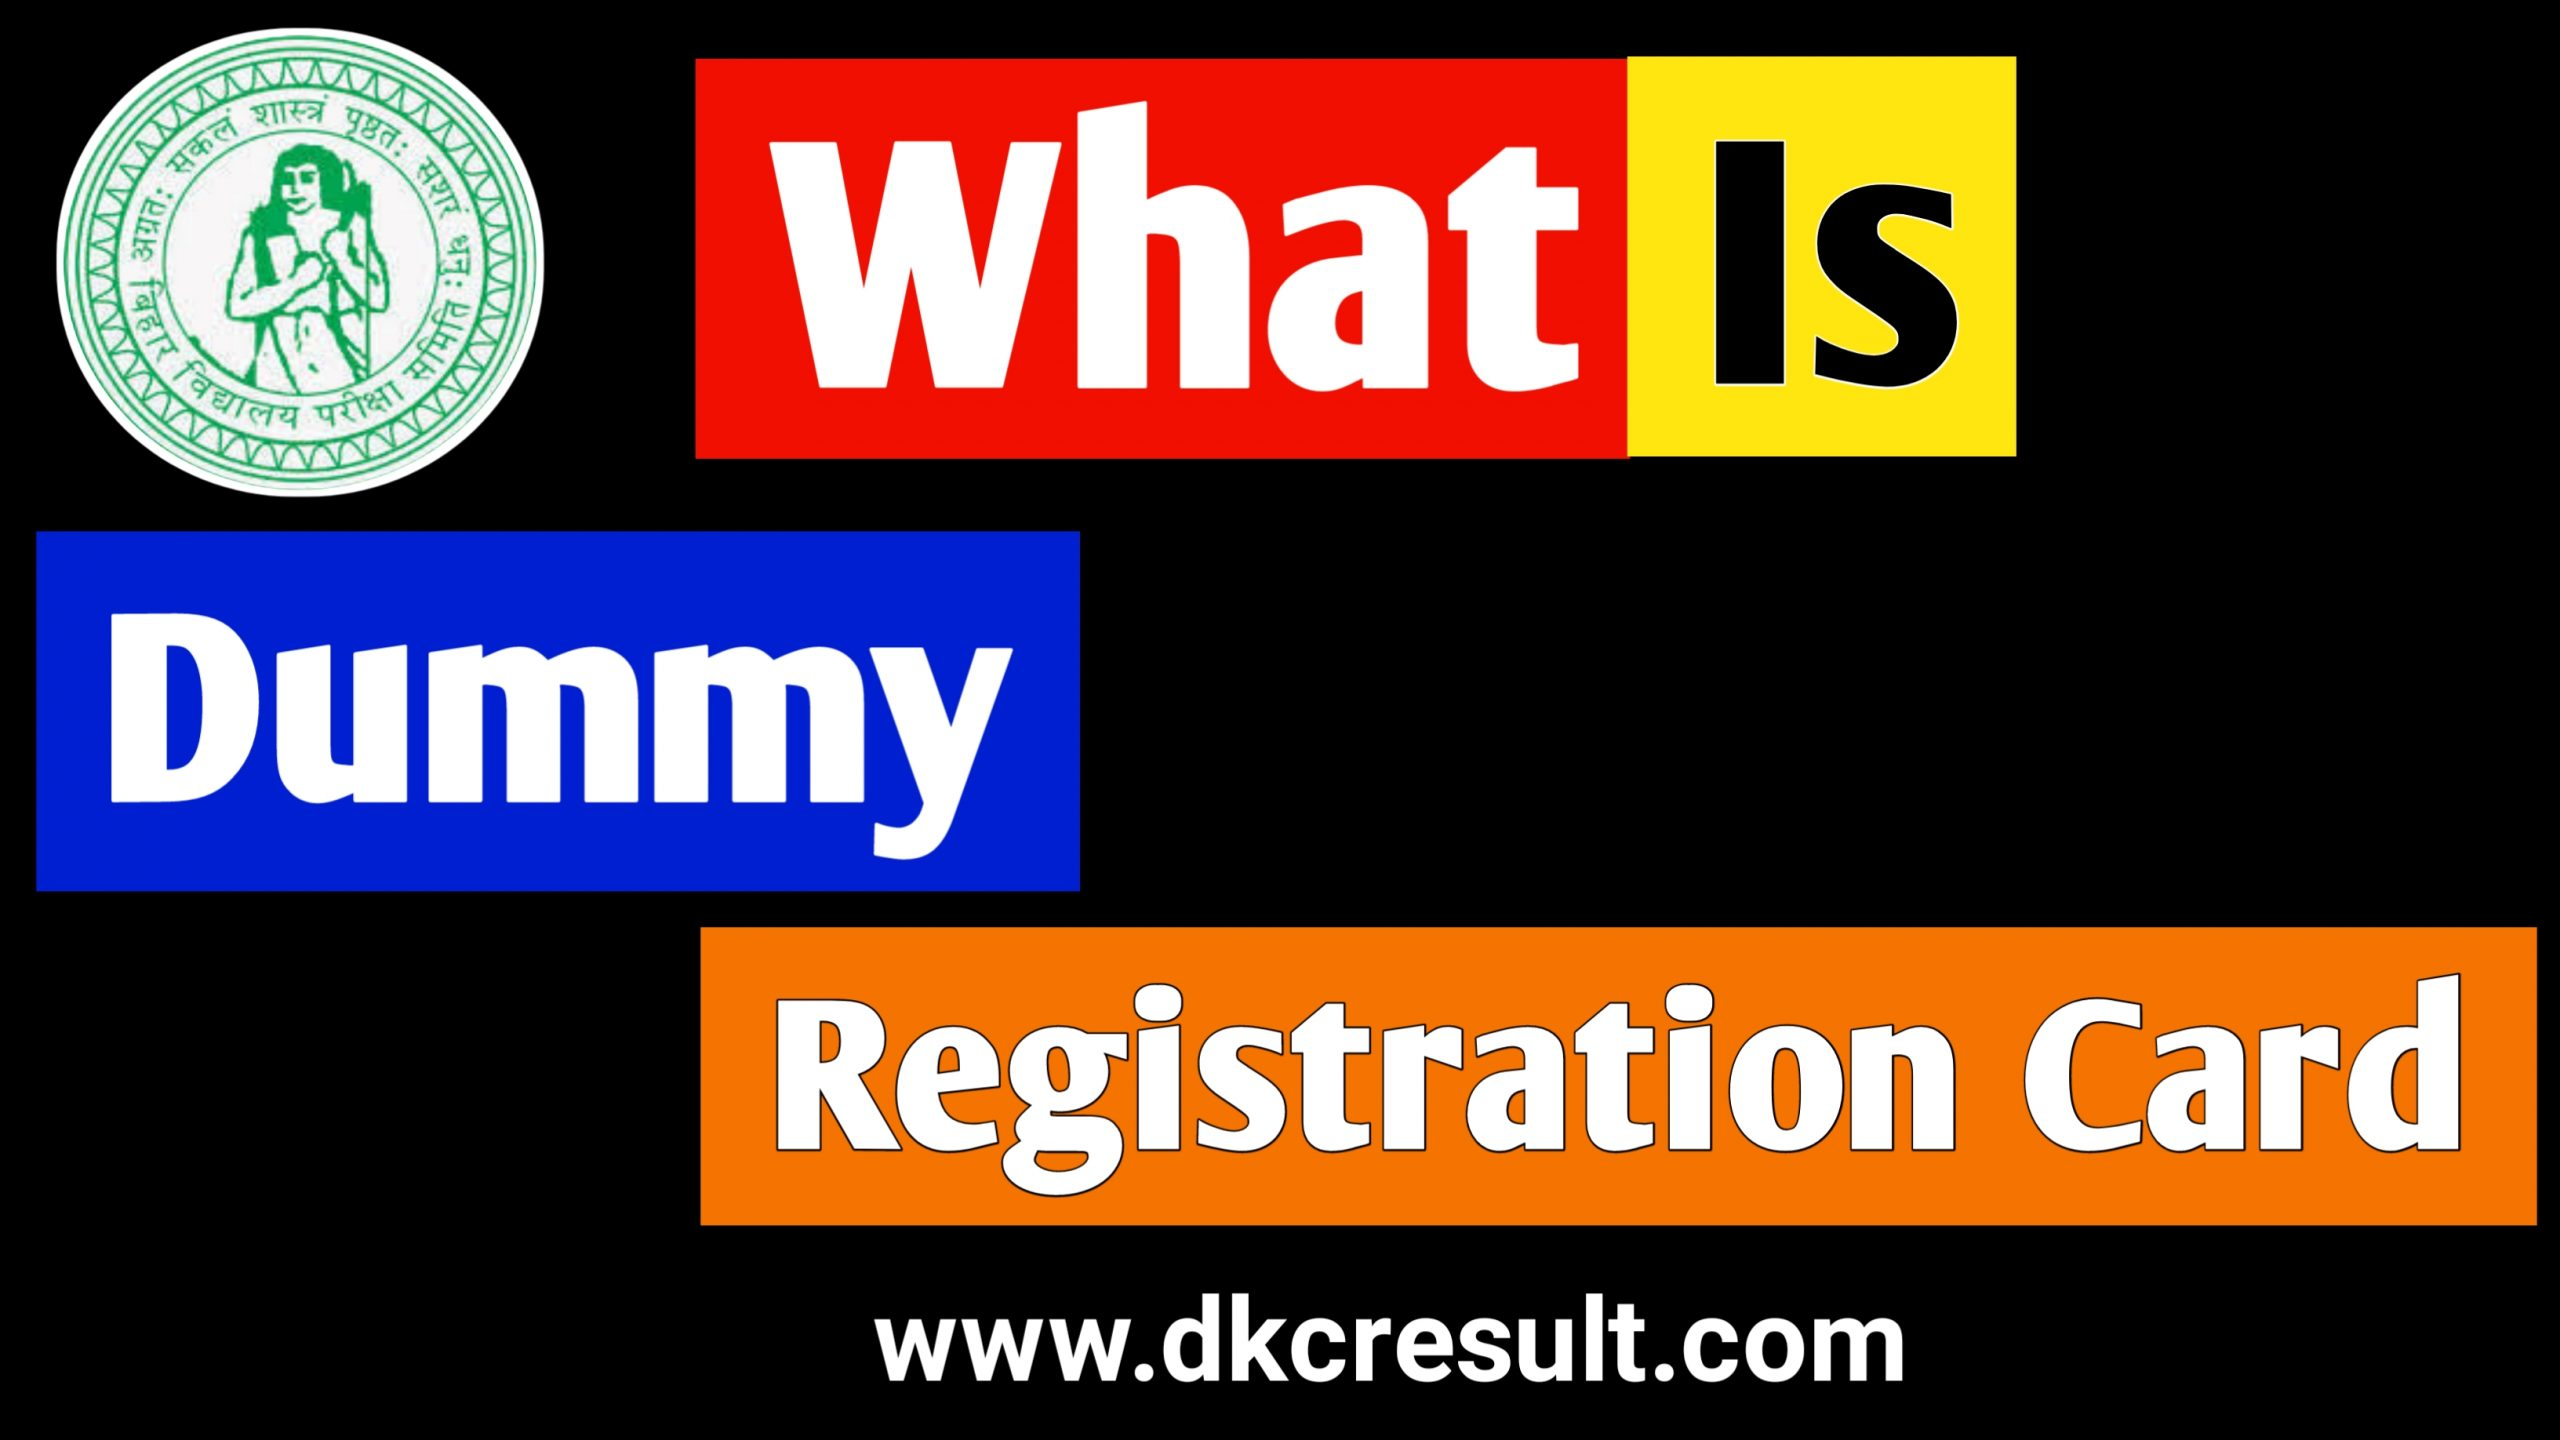 What Is Dummy Registration Card 2022